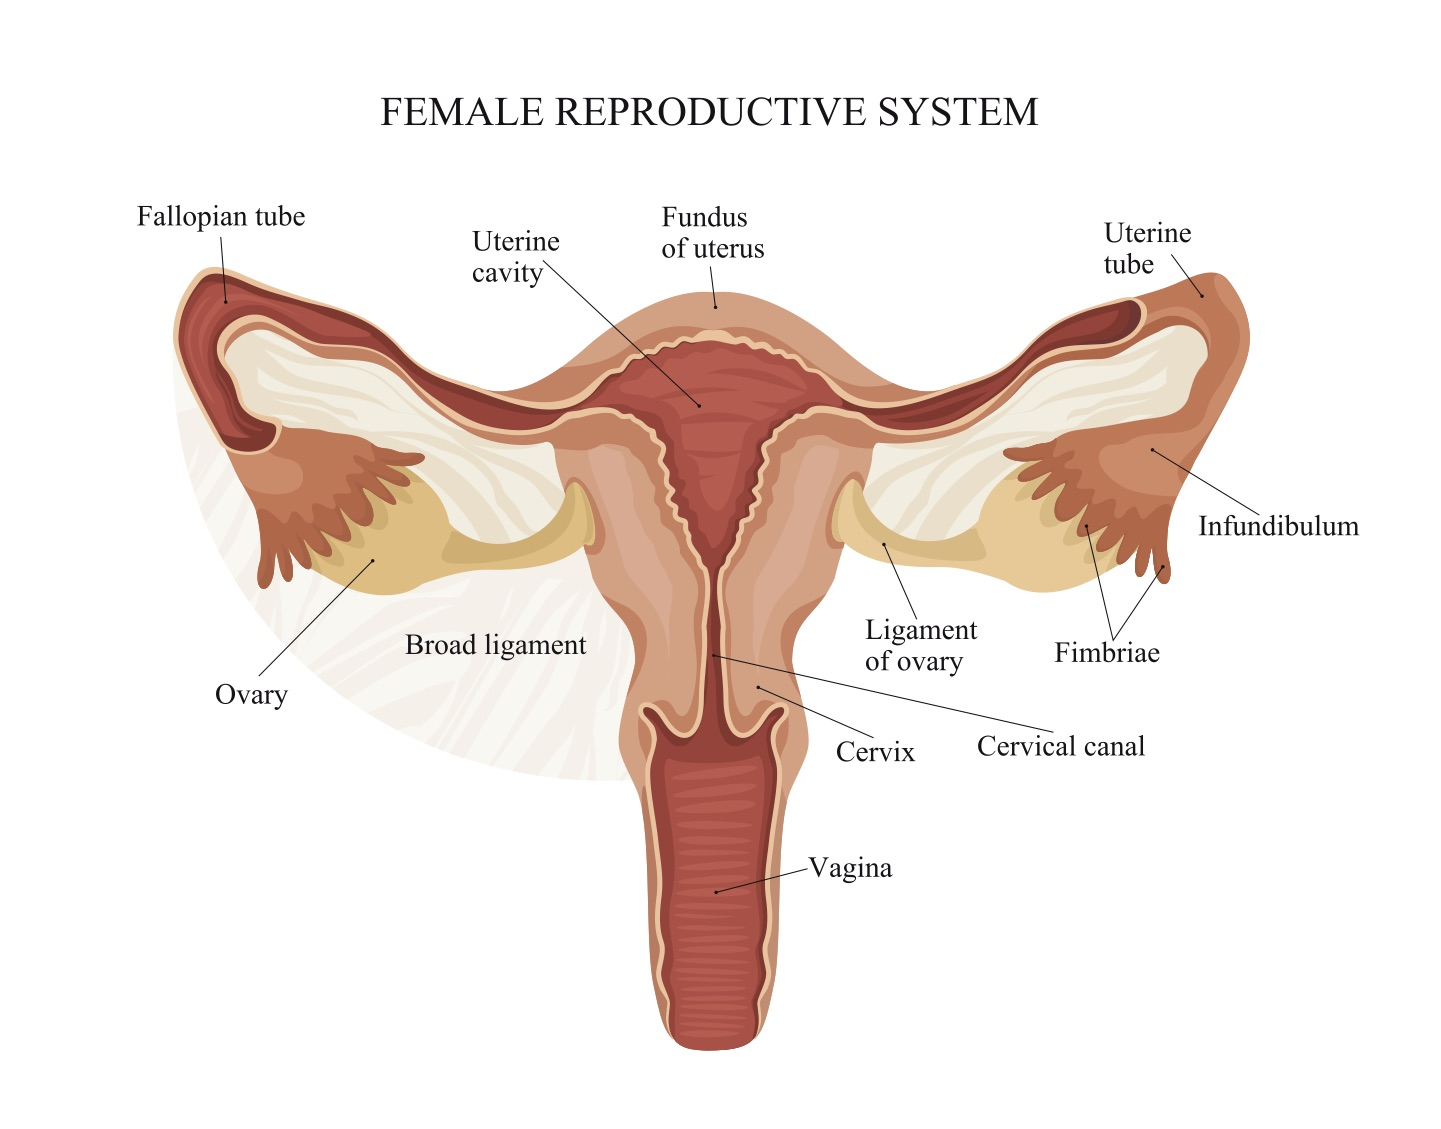 Flushing Blocked Fallopian Tubes Can Improve Fertility 2ser